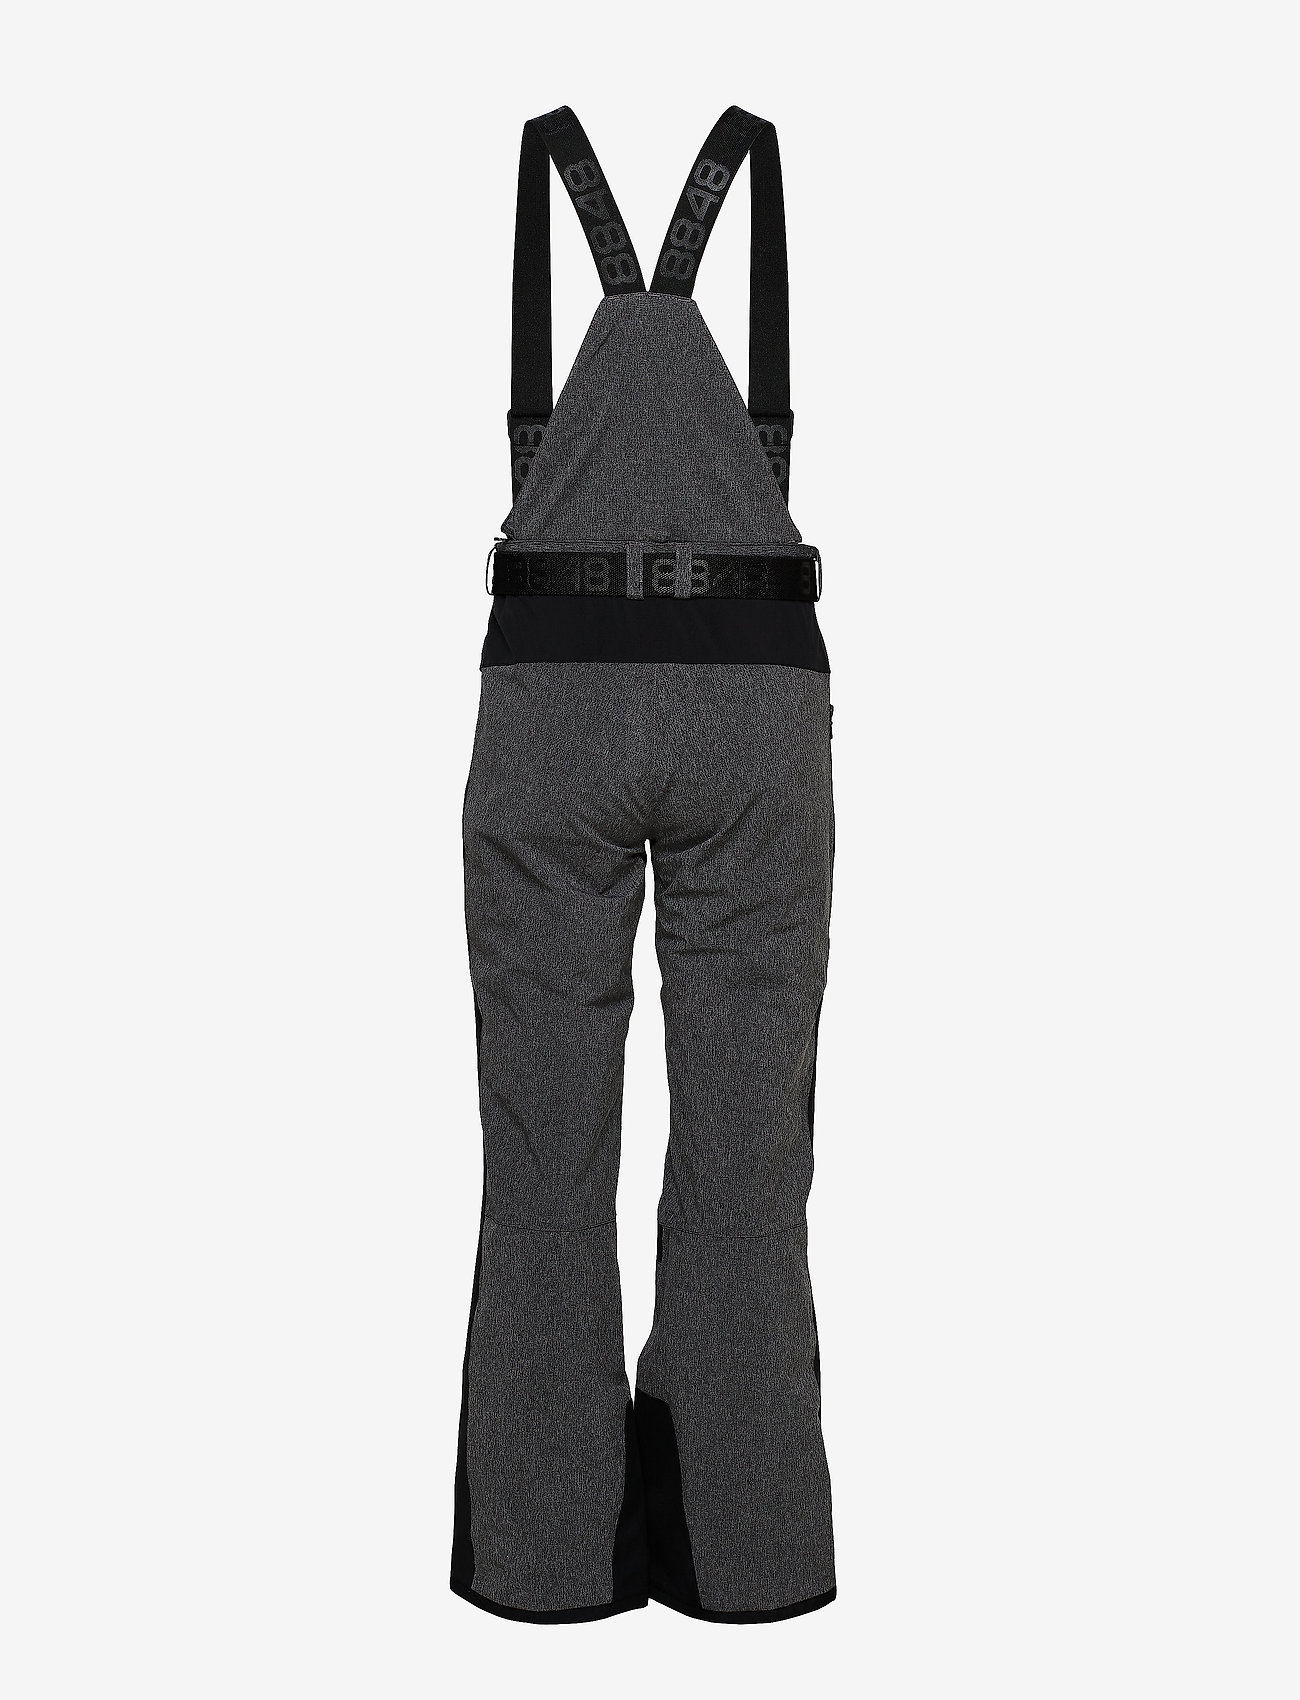 8848 Altitude Rothorn Pant - Trousers